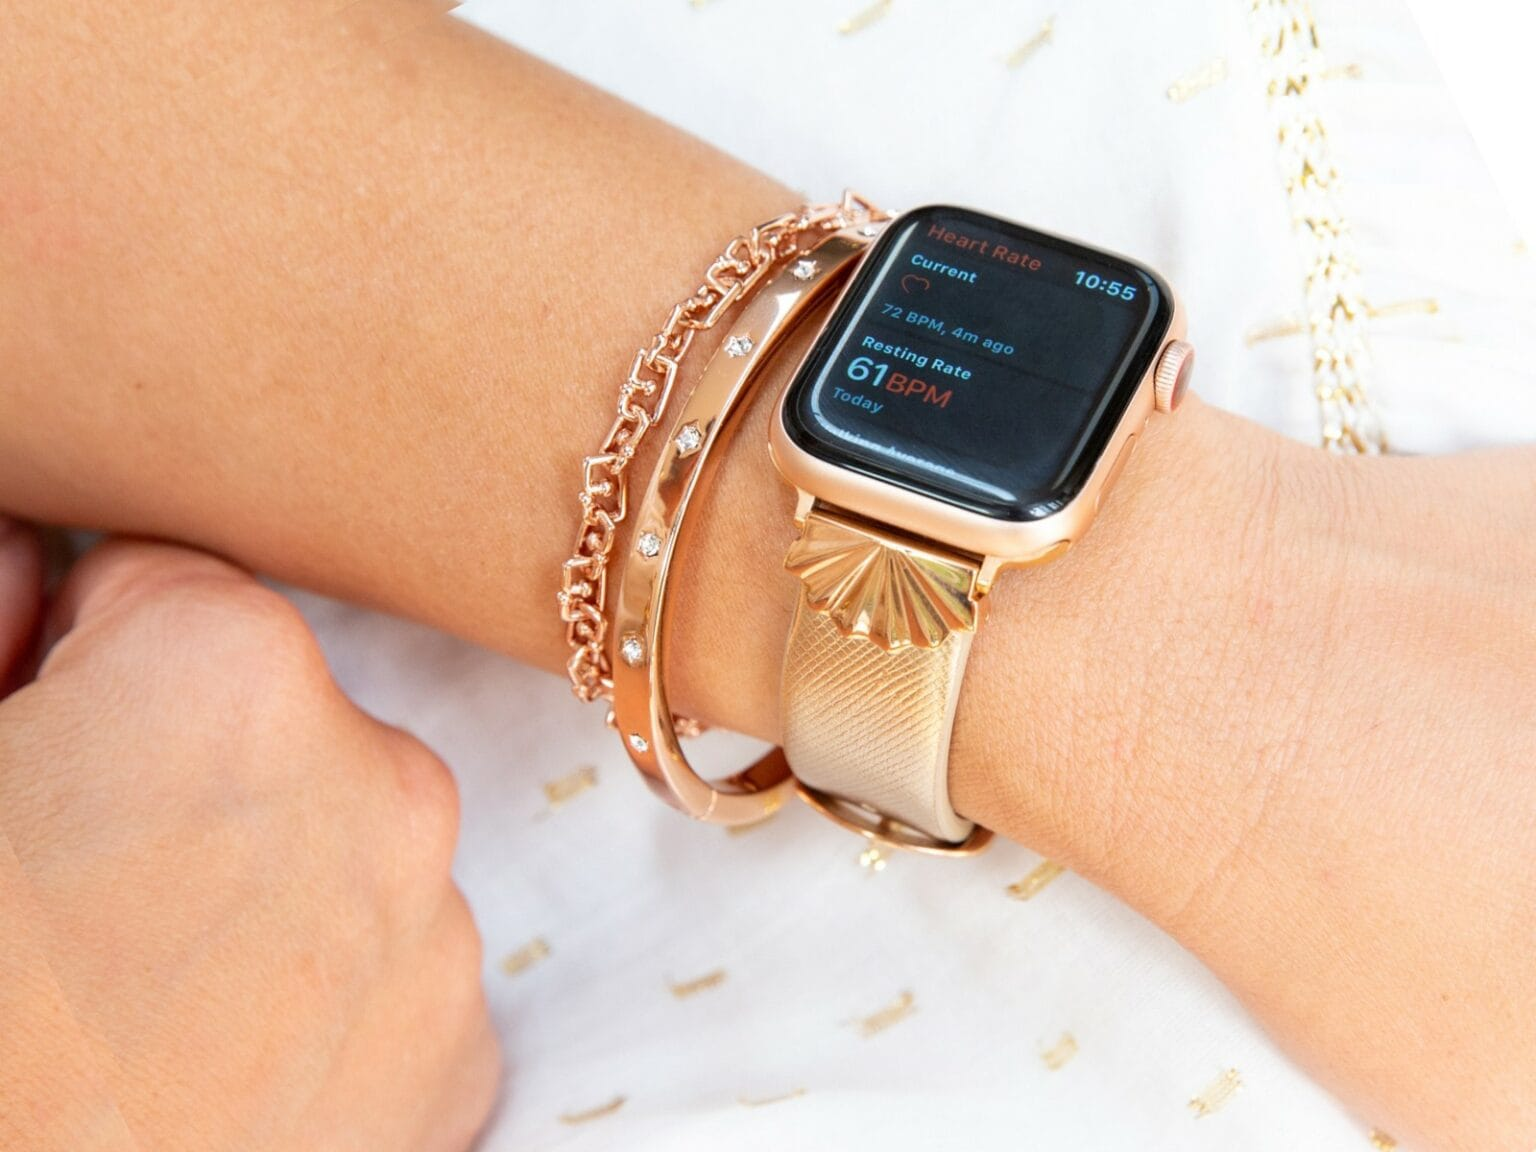 Goldenerre Starburst band for Apple Watch